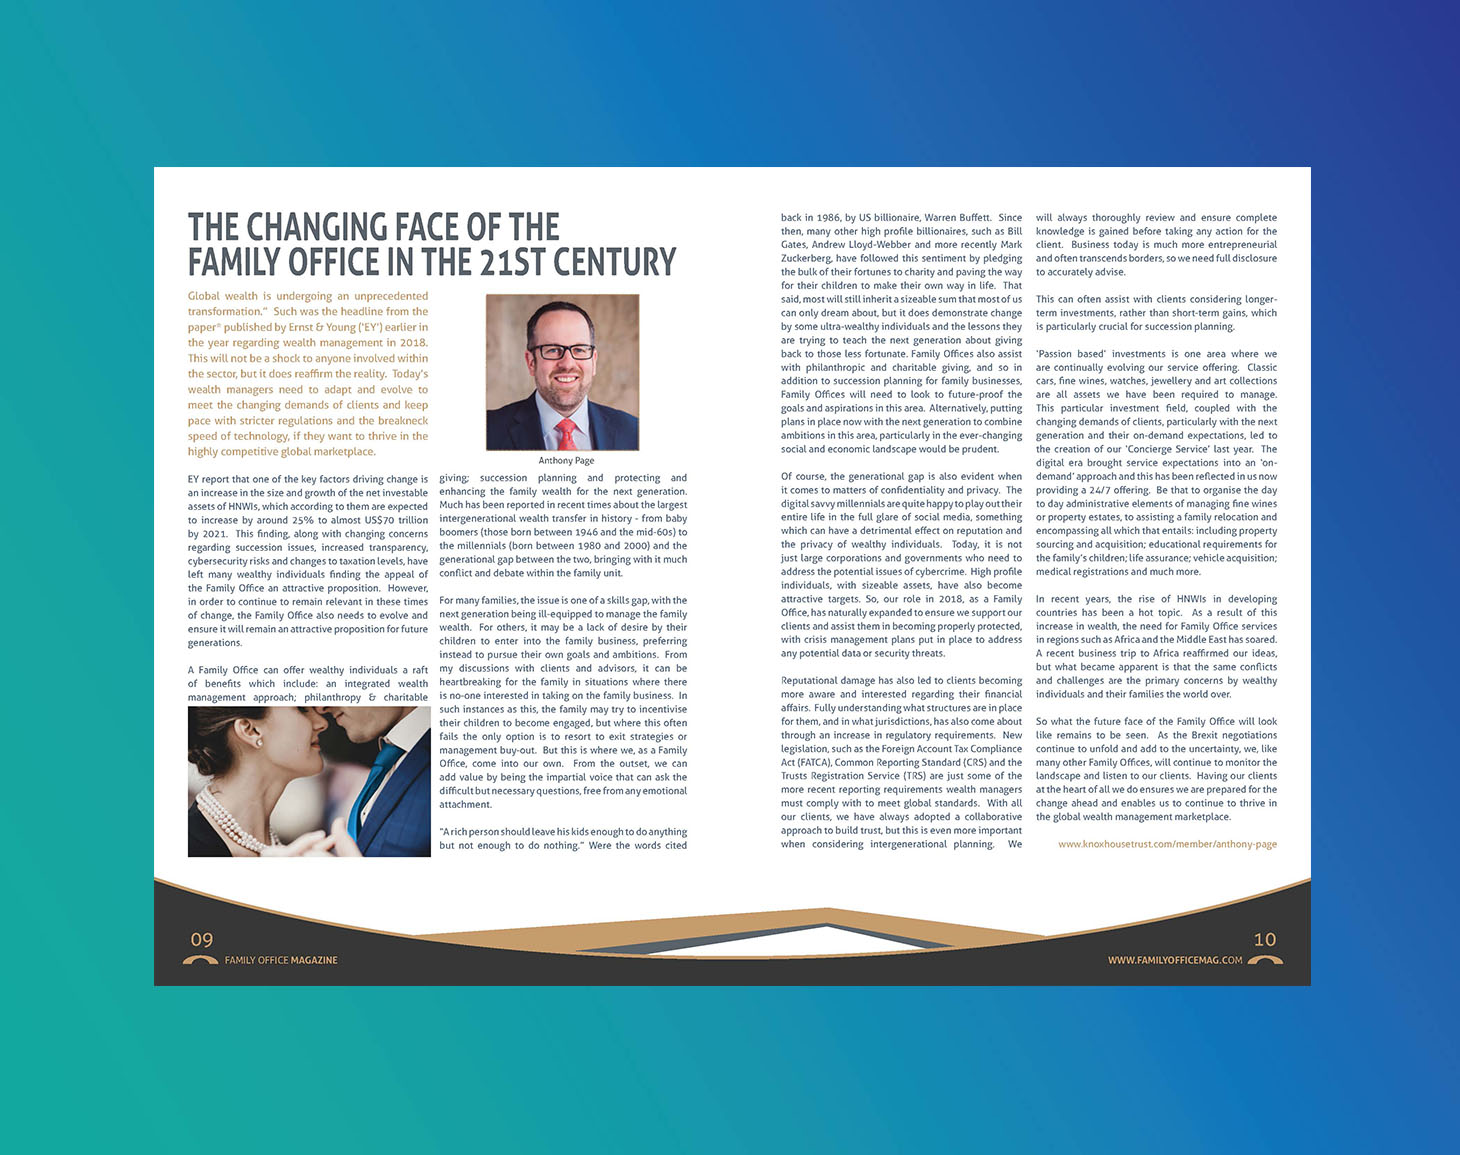 The Changing Face of the Family Office in the 21st Century article by Anthony Page